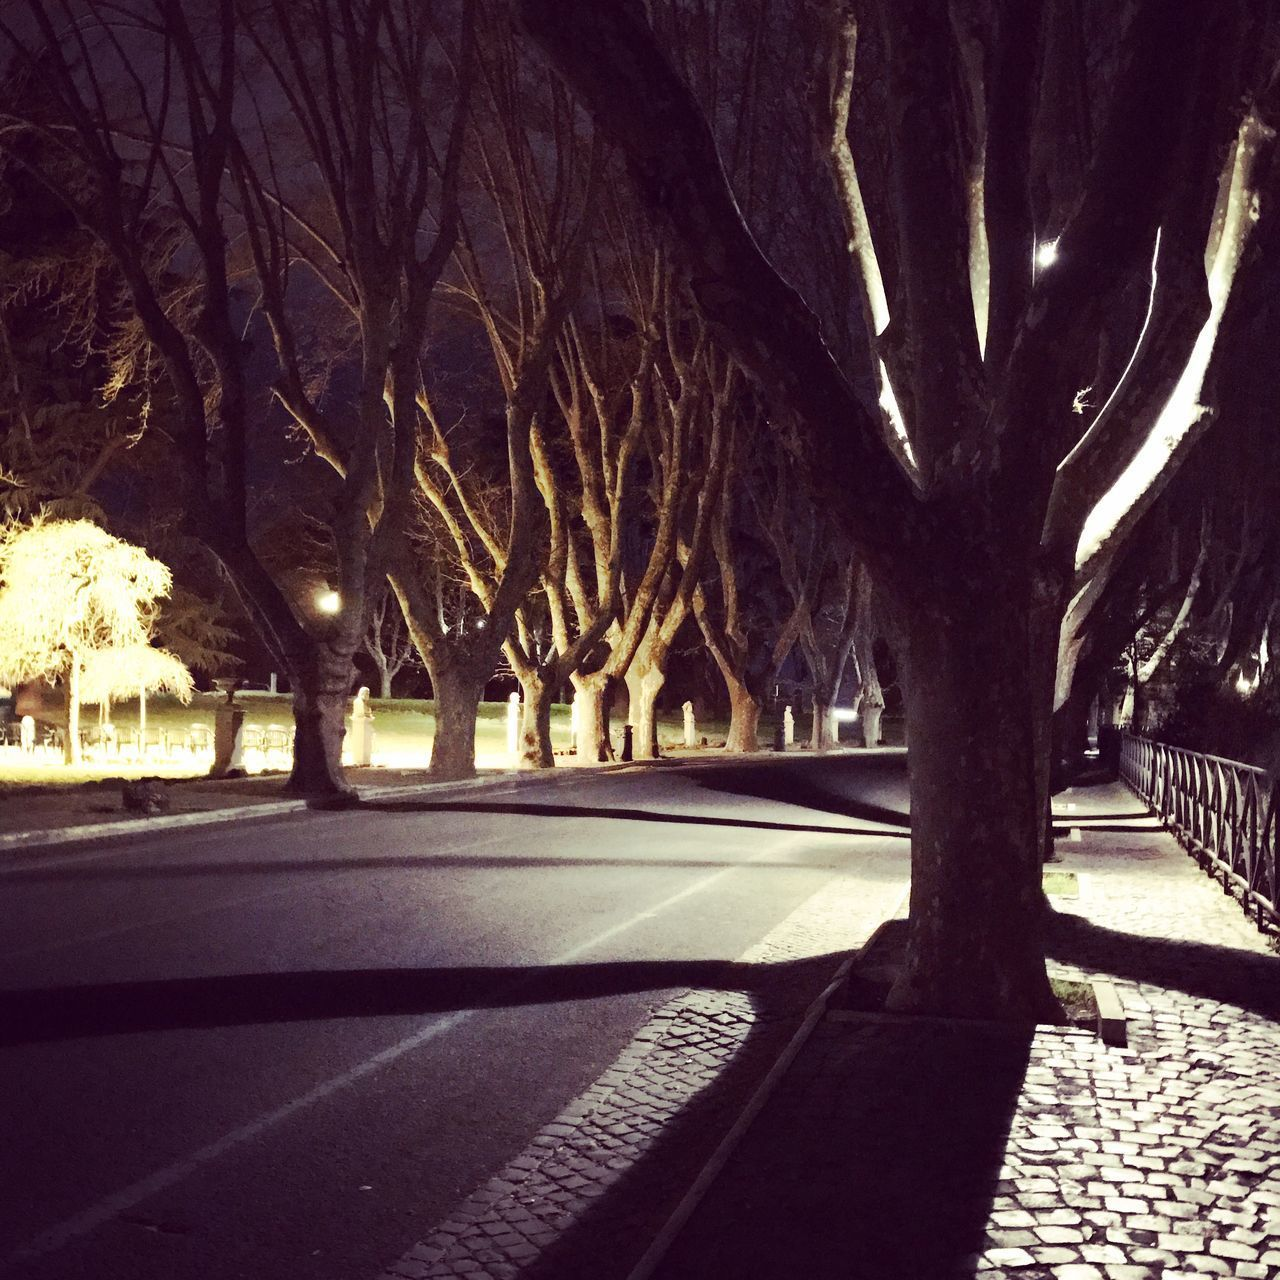 tree, bare tree, street, outdoors, road, night, no people, tree trunk, branch, transportation, nature, city, architecture, sky